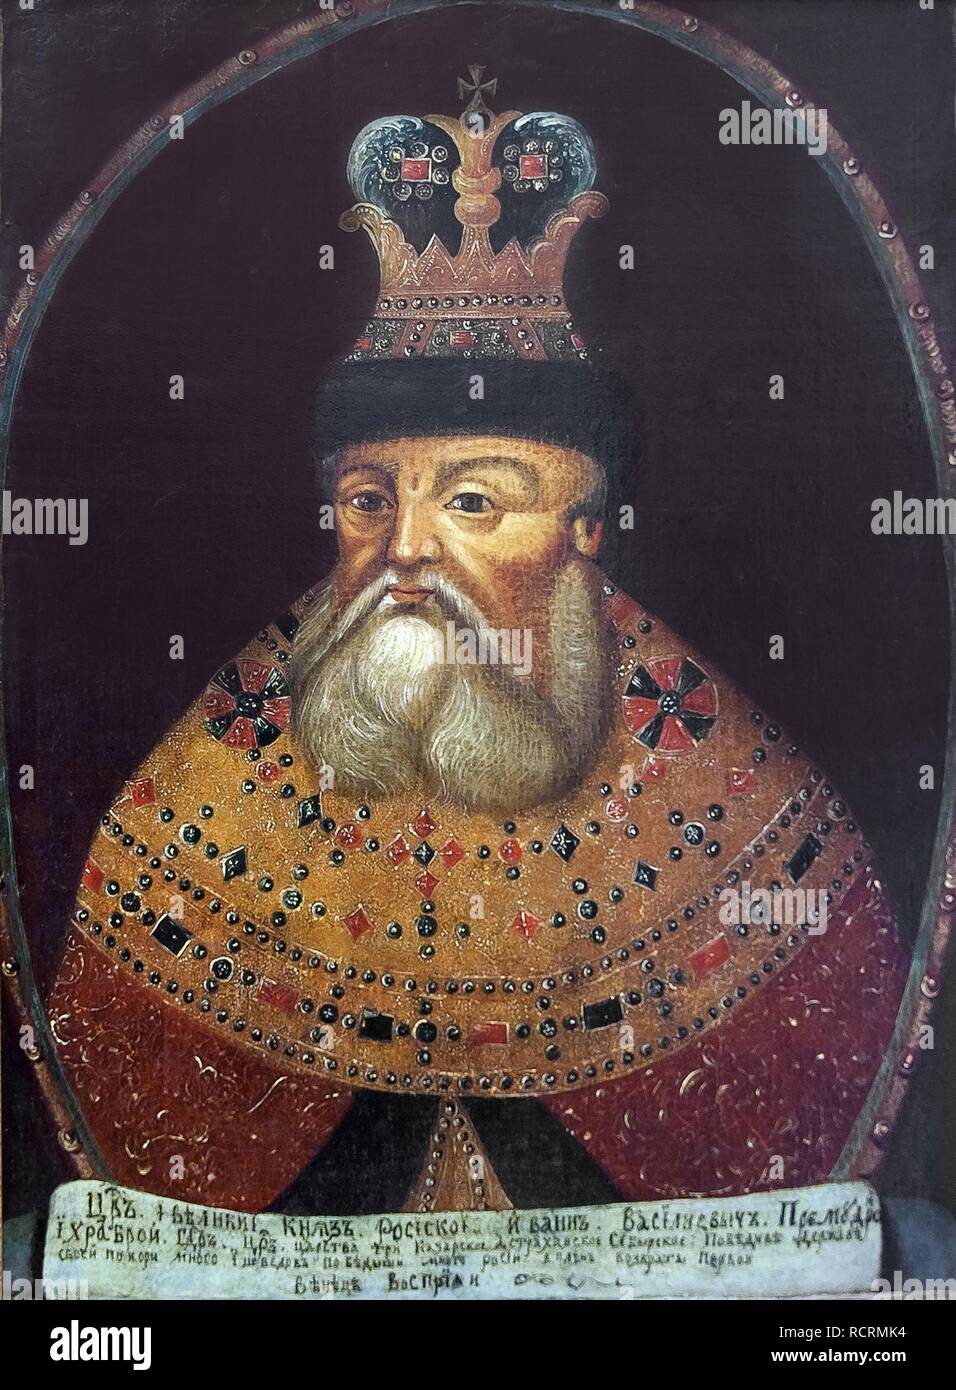 Parsuna (portrait) of the Tsar Ivan IV the Terrible (1530-1584). Museum: State Open-air Museum 'Alexandrovskaya village', Alexandrov. Author: ANONYMOUS. - Stock Image